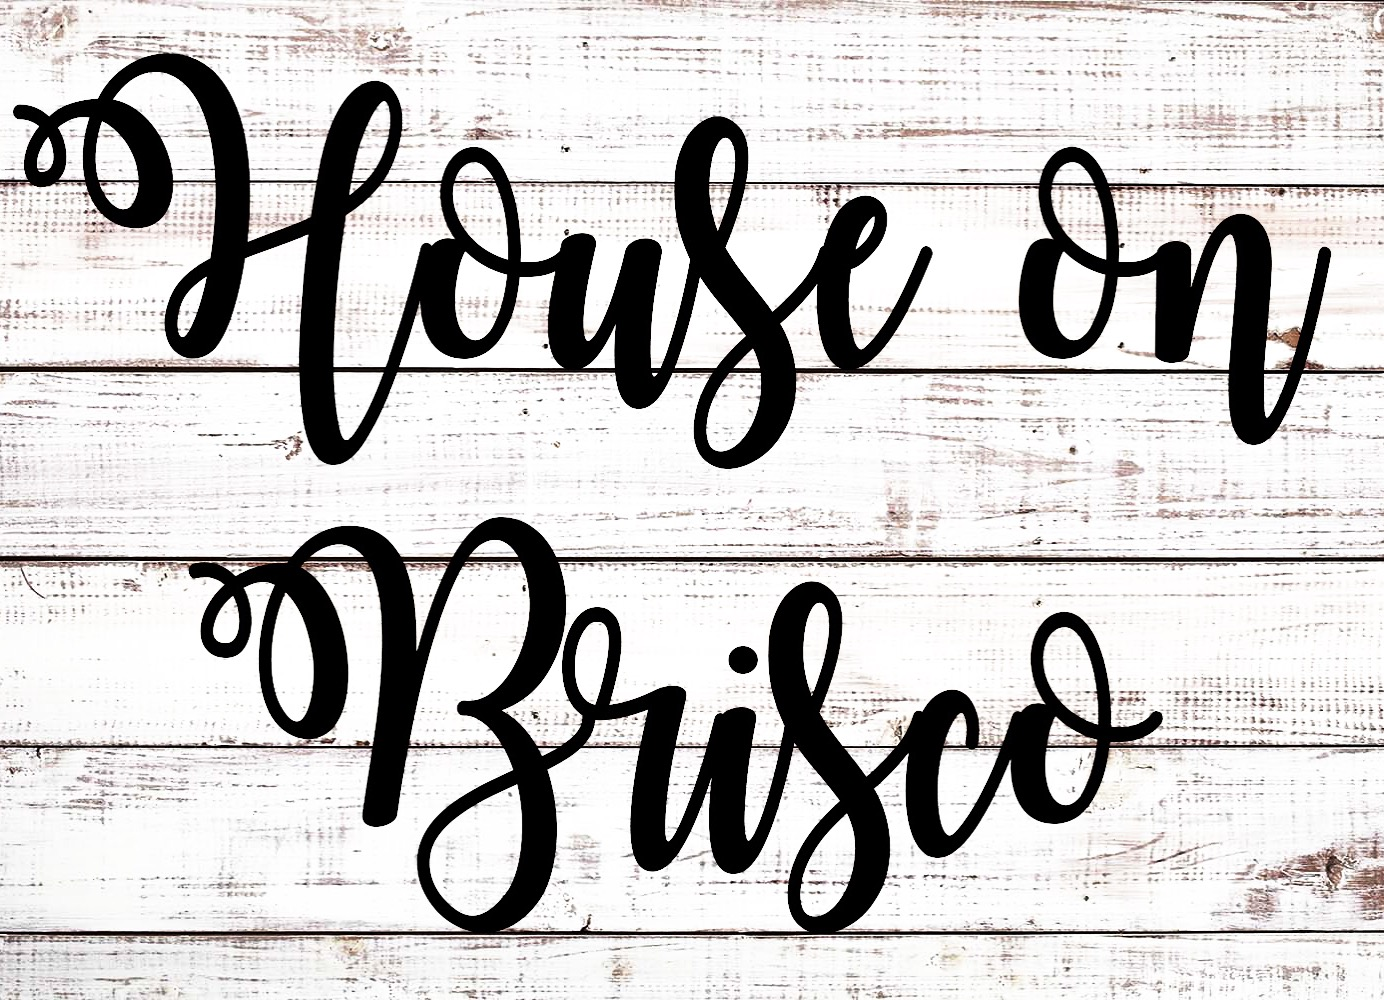 House on Brisco